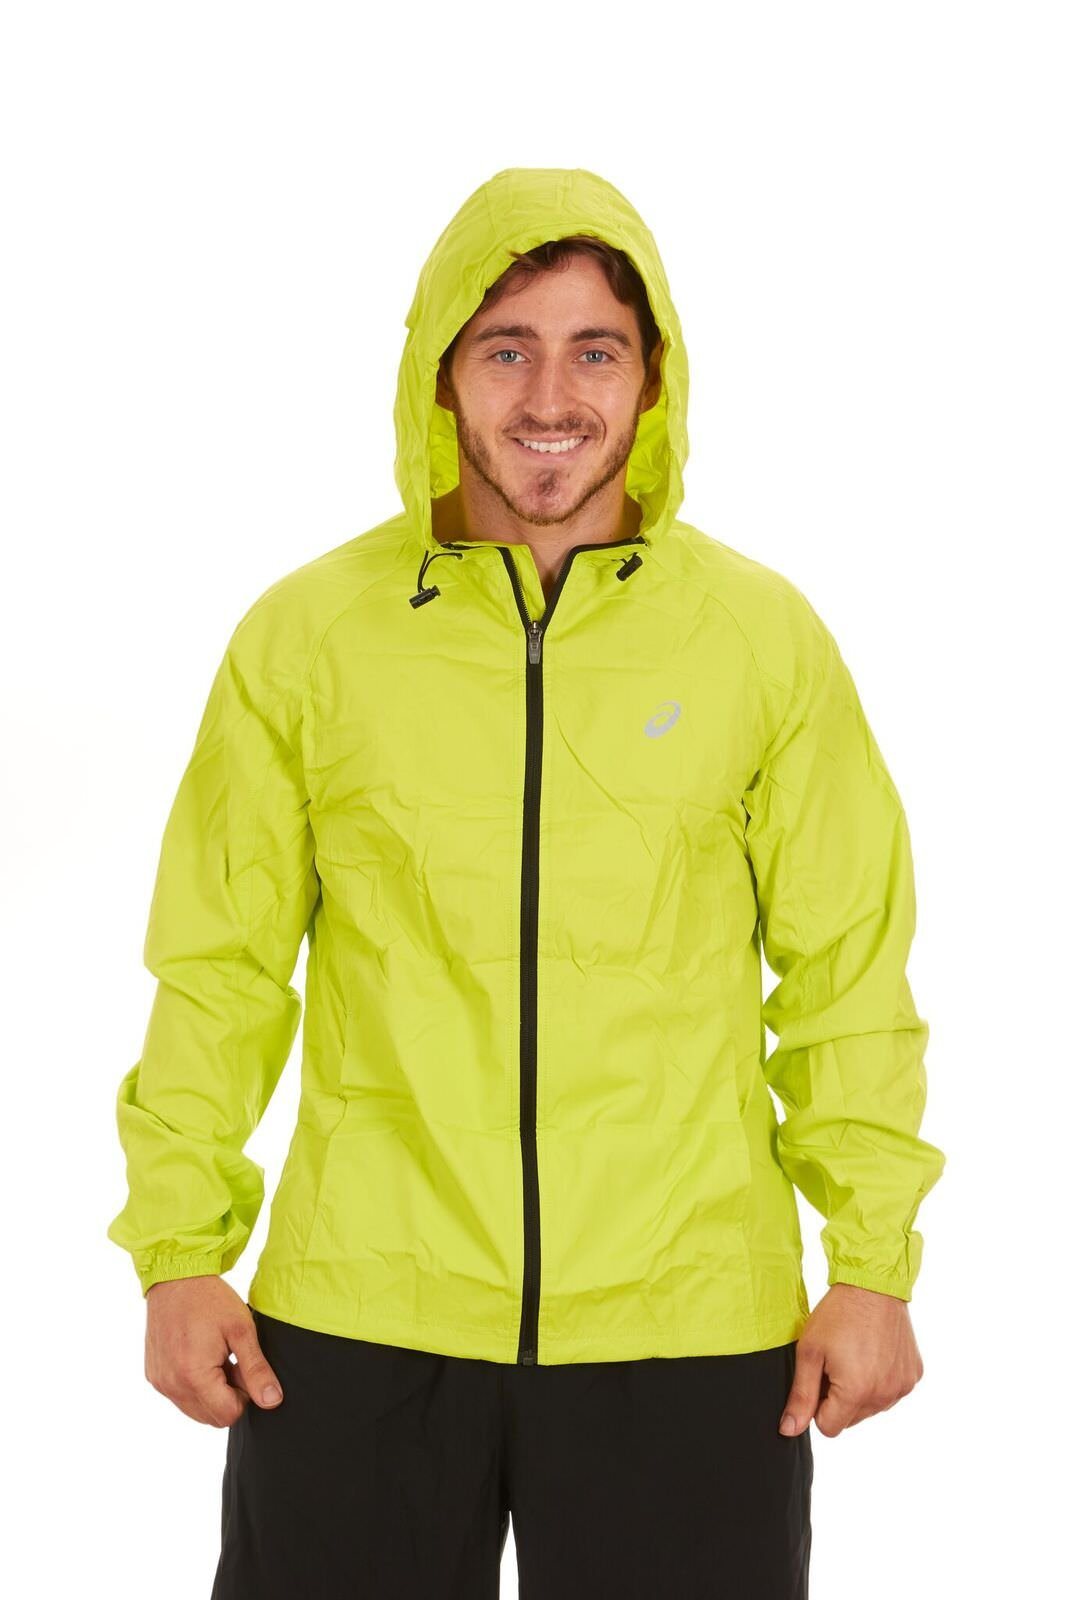 ASICS Mens Packable Jacket (Lime, XX-Large)